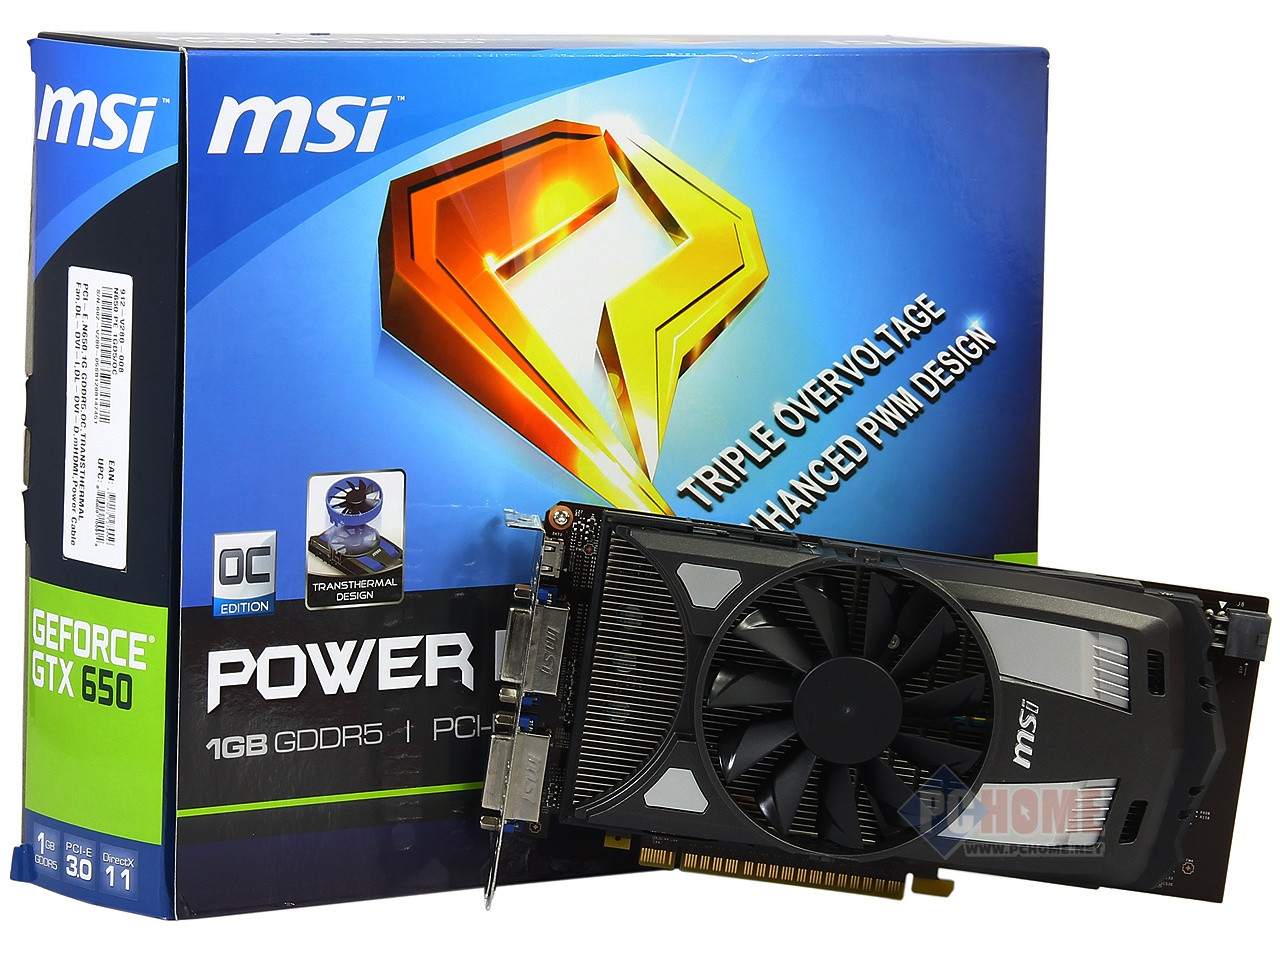 MSI GeForce GTX 650 OC